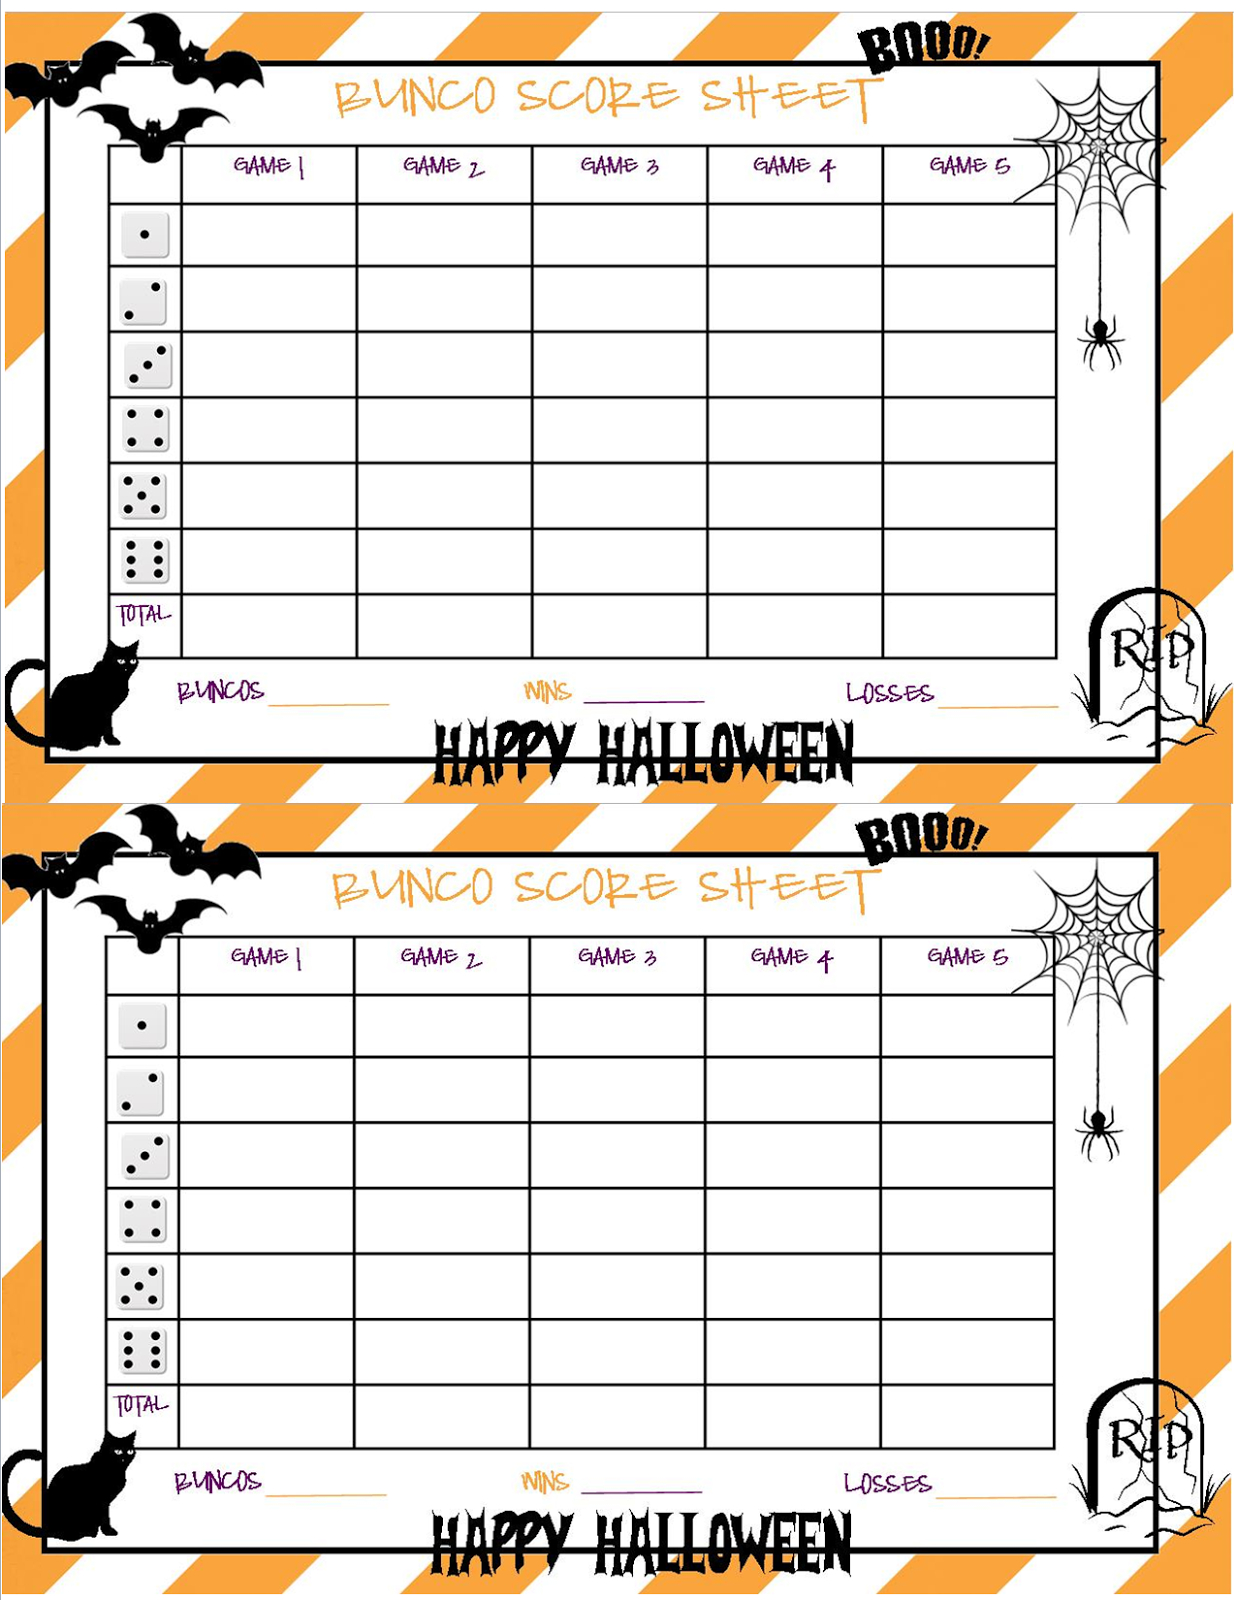 Recipes From Stephanie: Halloween Bunco Sheet - Free Printable Halloween Bunco Score Sheets